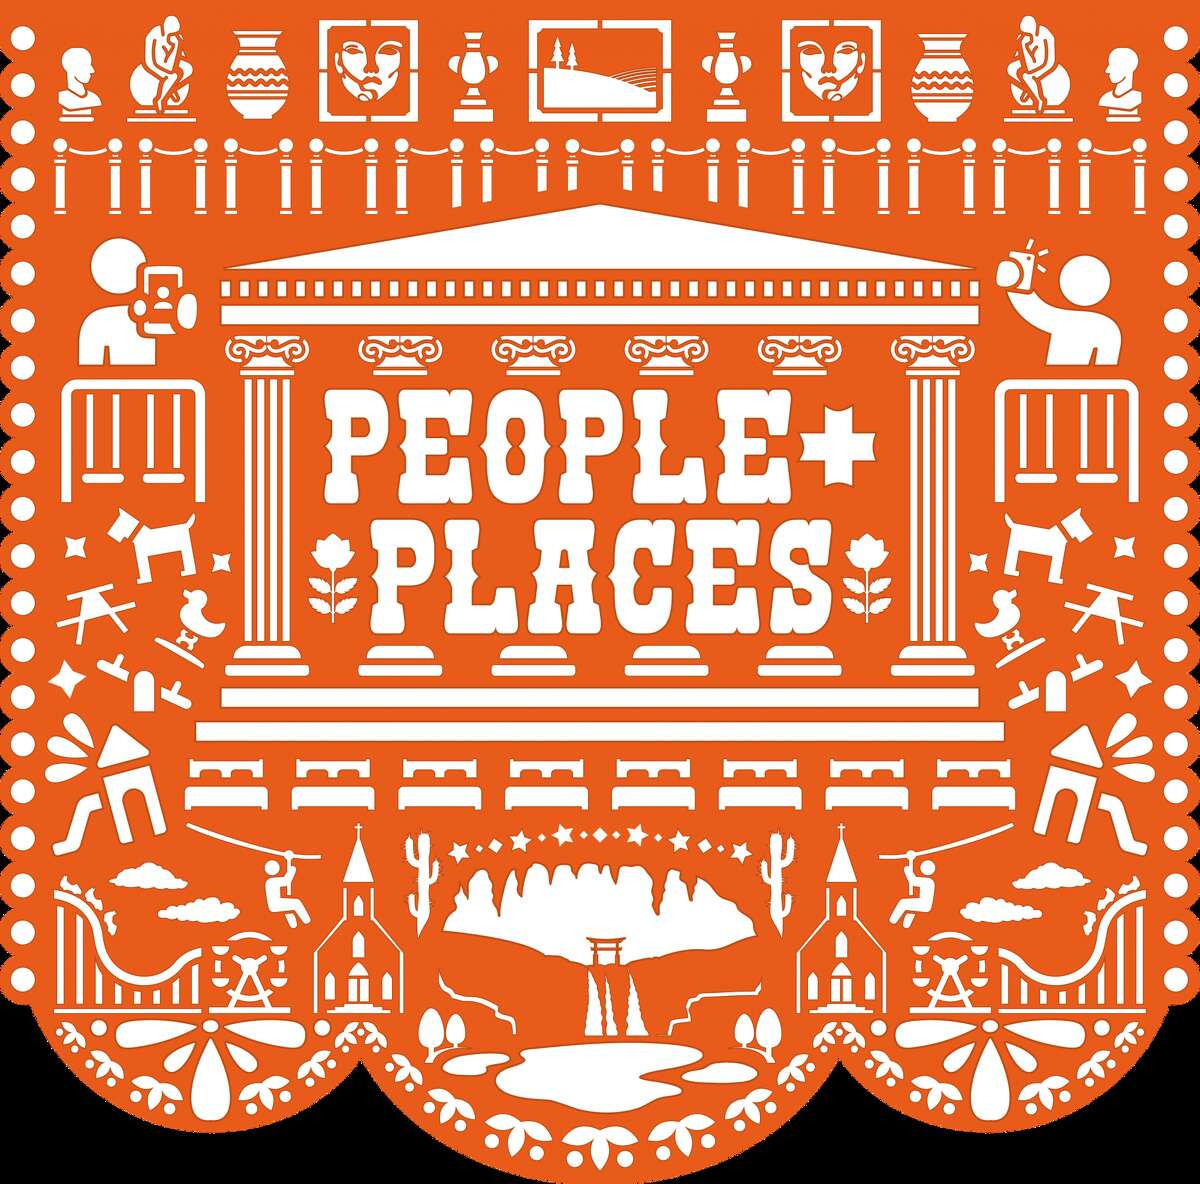 People and PlacesInfluence. Ease. ExplorePlace and lifestyles that make this city unique